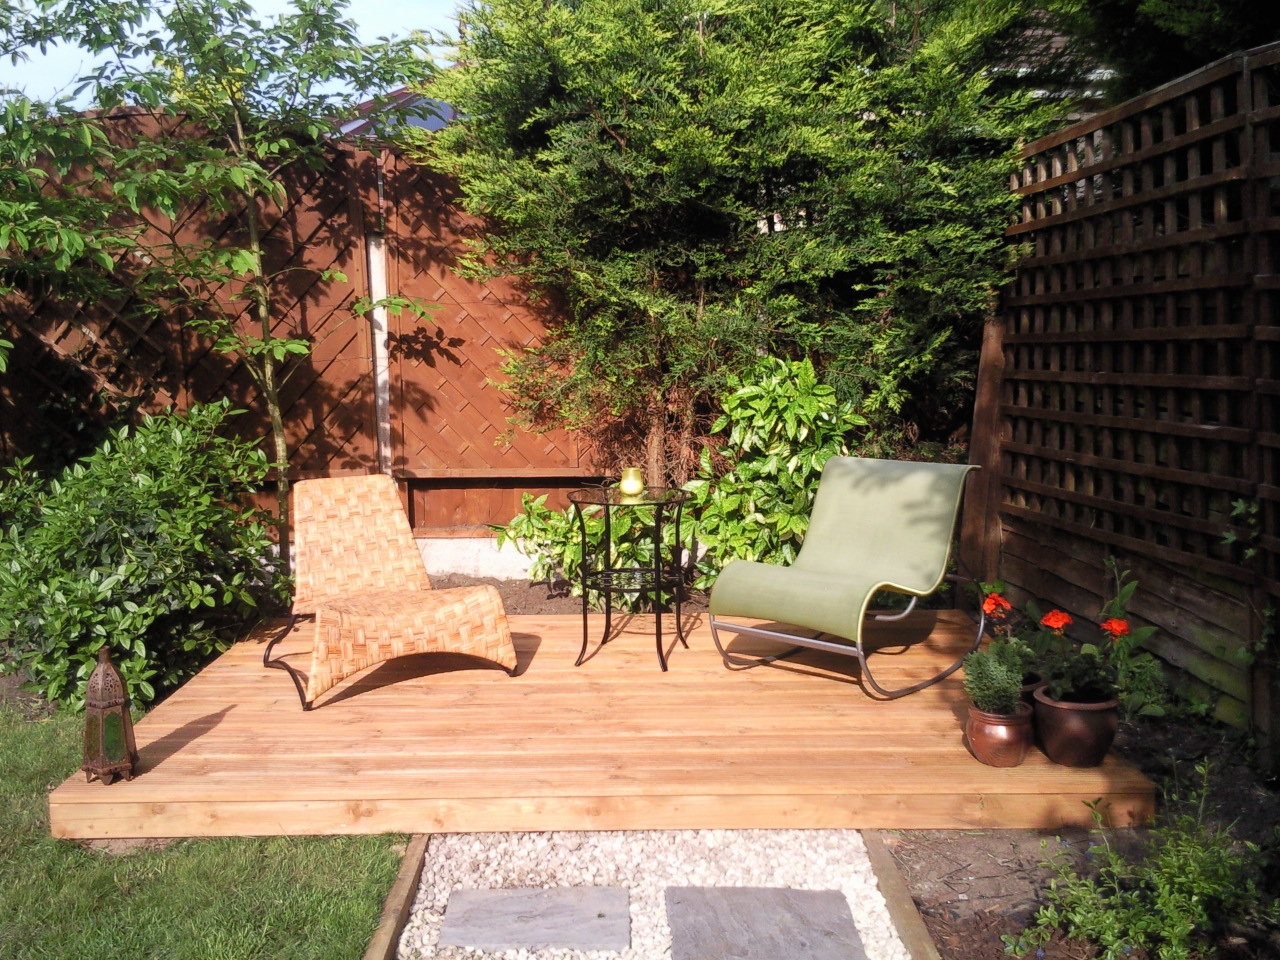 Landscape gardening south east london garden design for Garden design decking areas